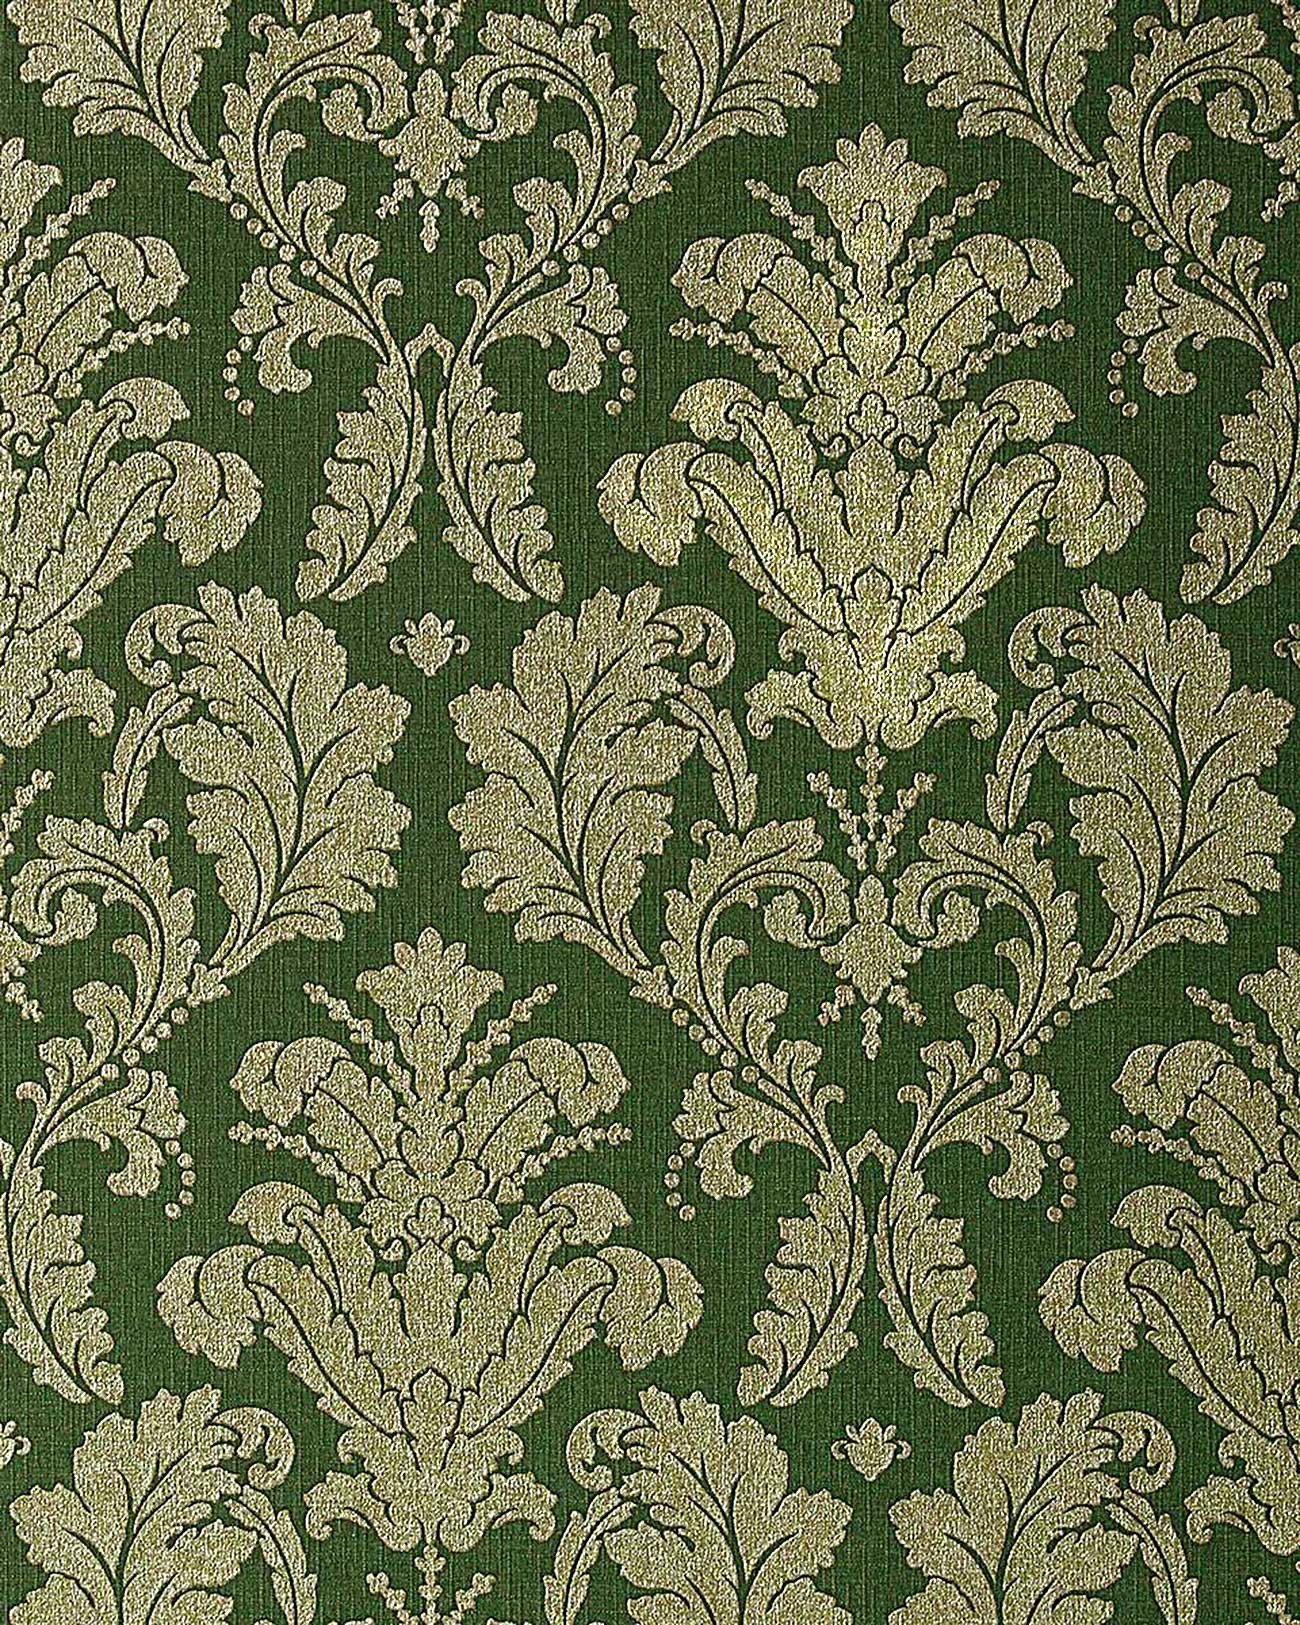 Wallpaper wall baroque damask EDEM 752-38 luxury heavyweight green gold platin-grey 5.33 sqm (57 sq ft)